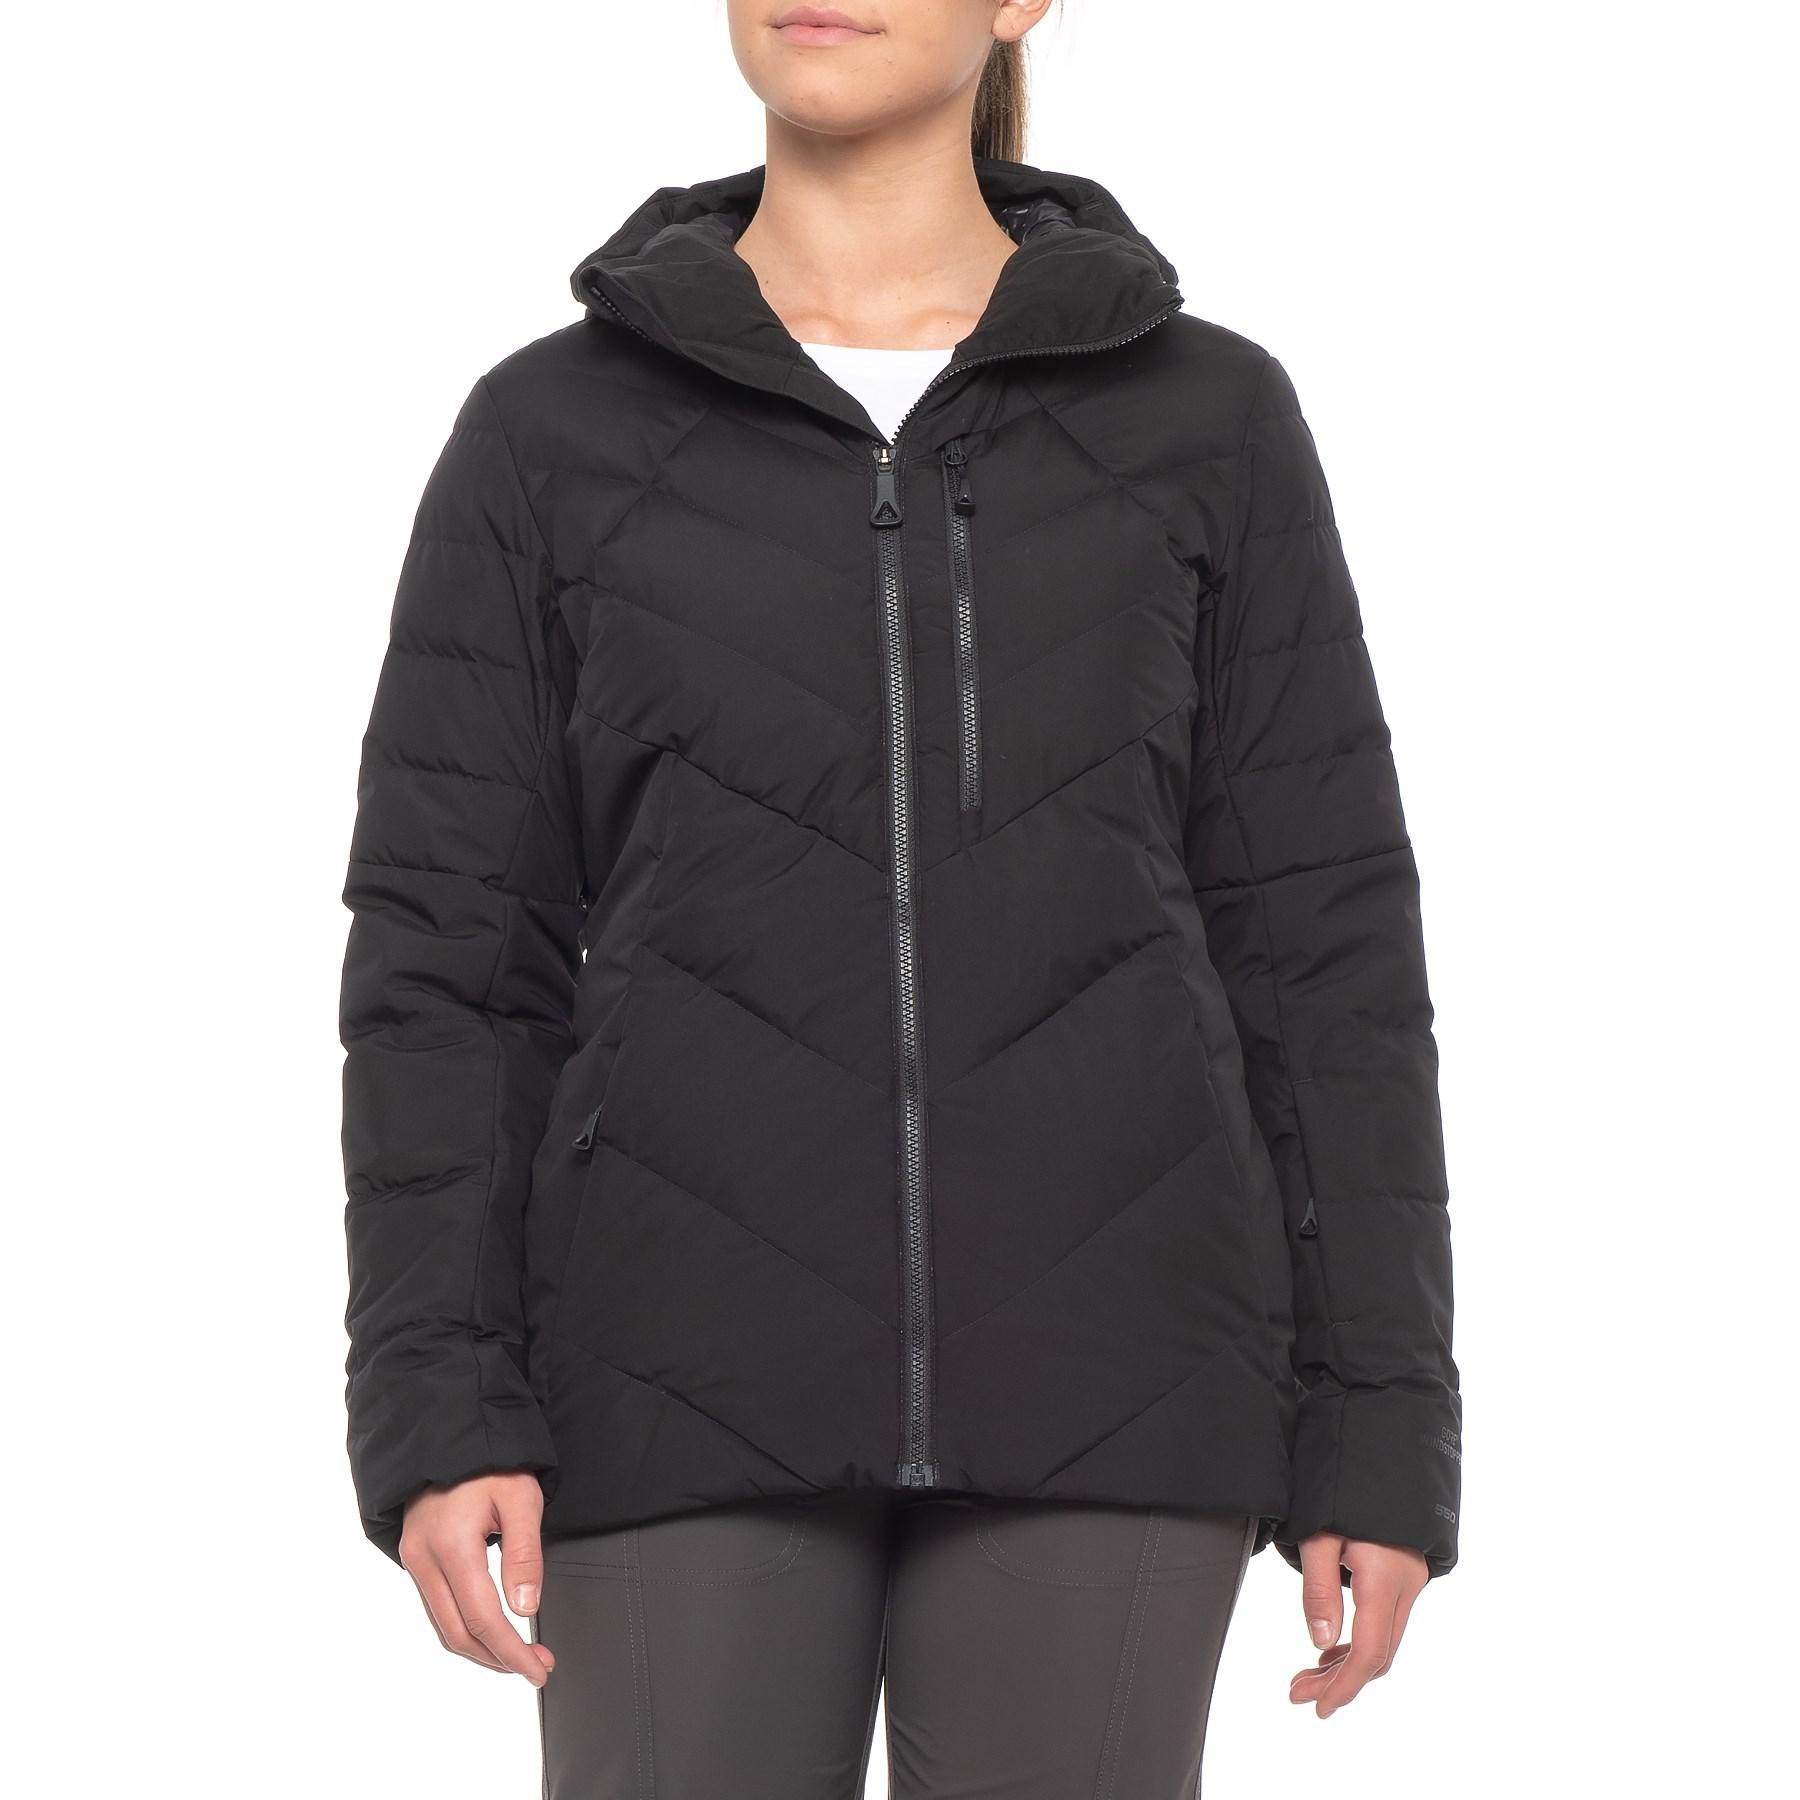 e6362810a The North Face Black Corefire Windstopper® Hooded Down Ski Jacket (for  Women)